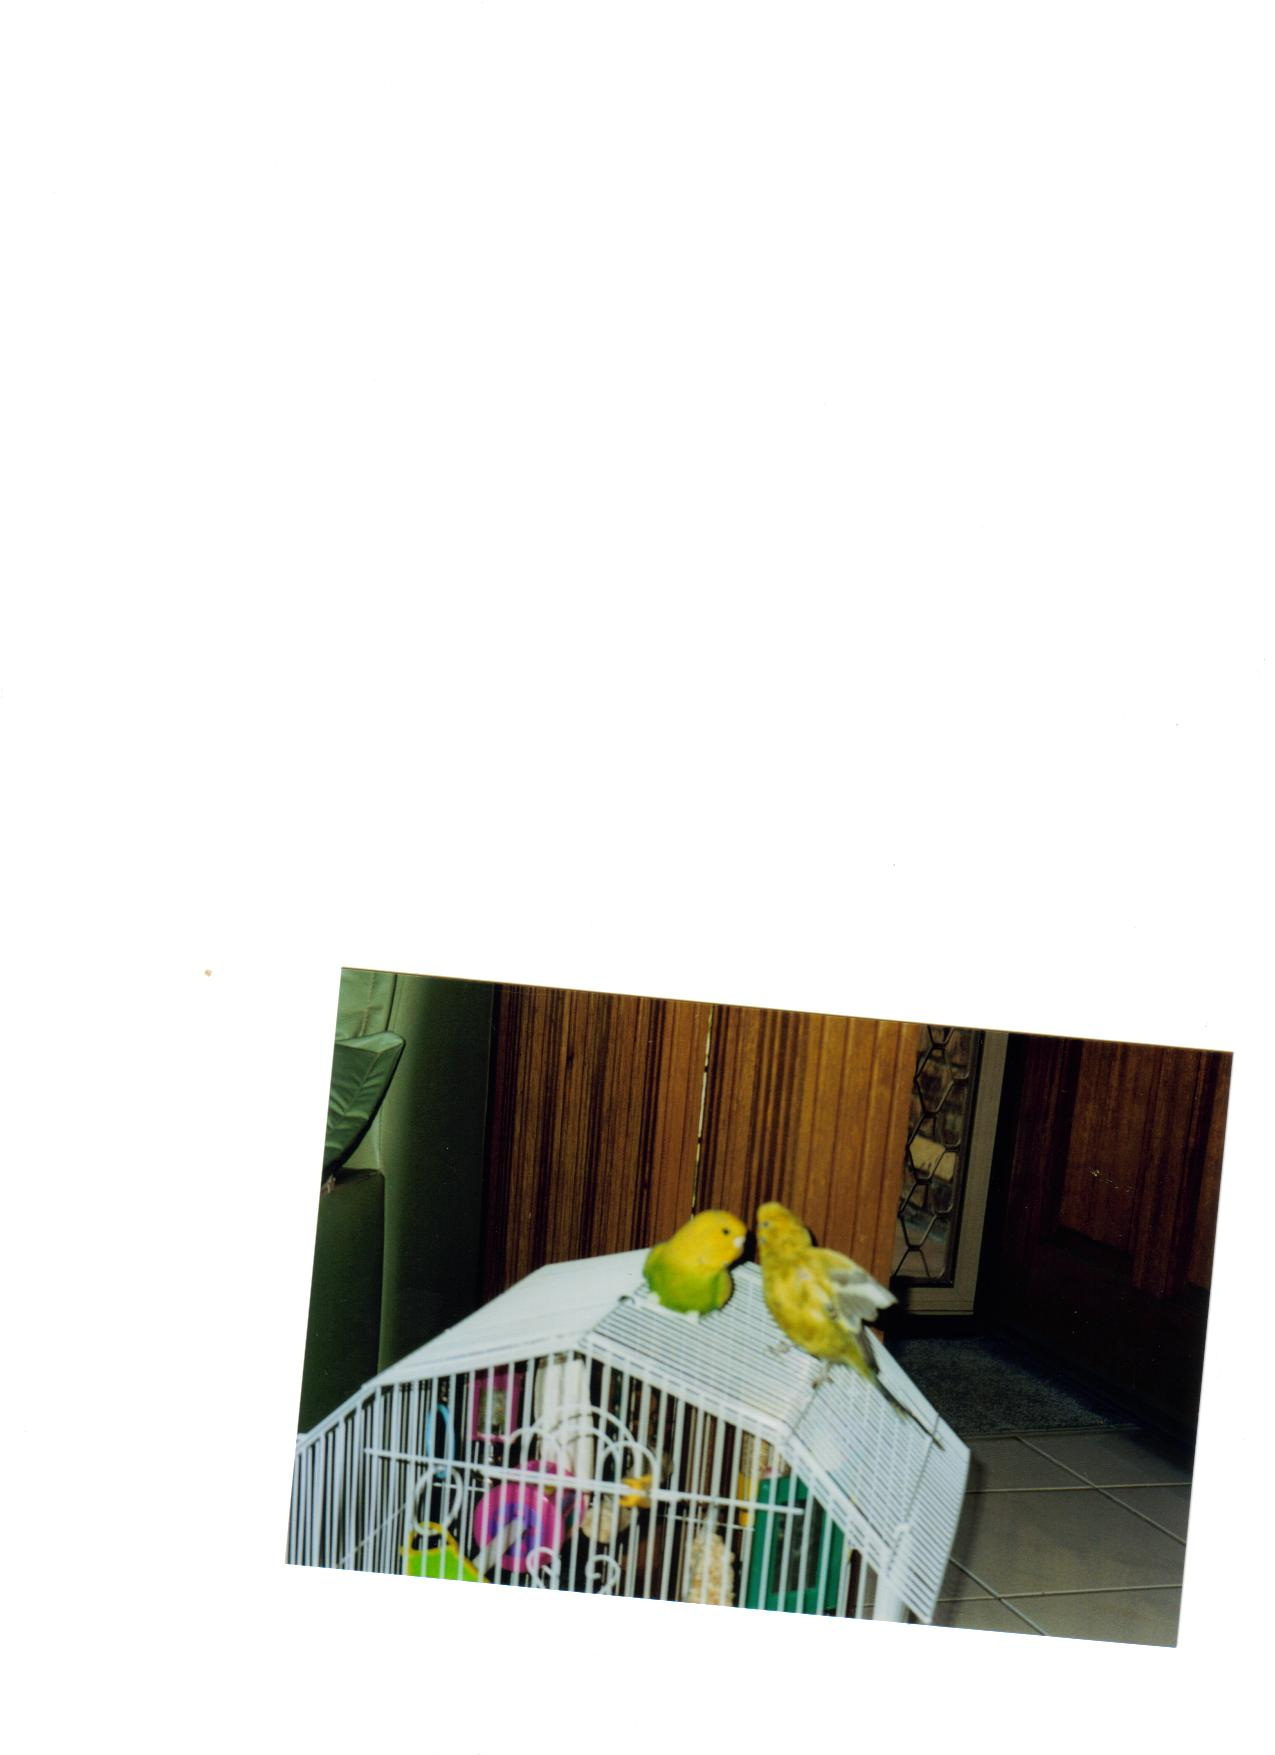 Paulie (my first budgie)